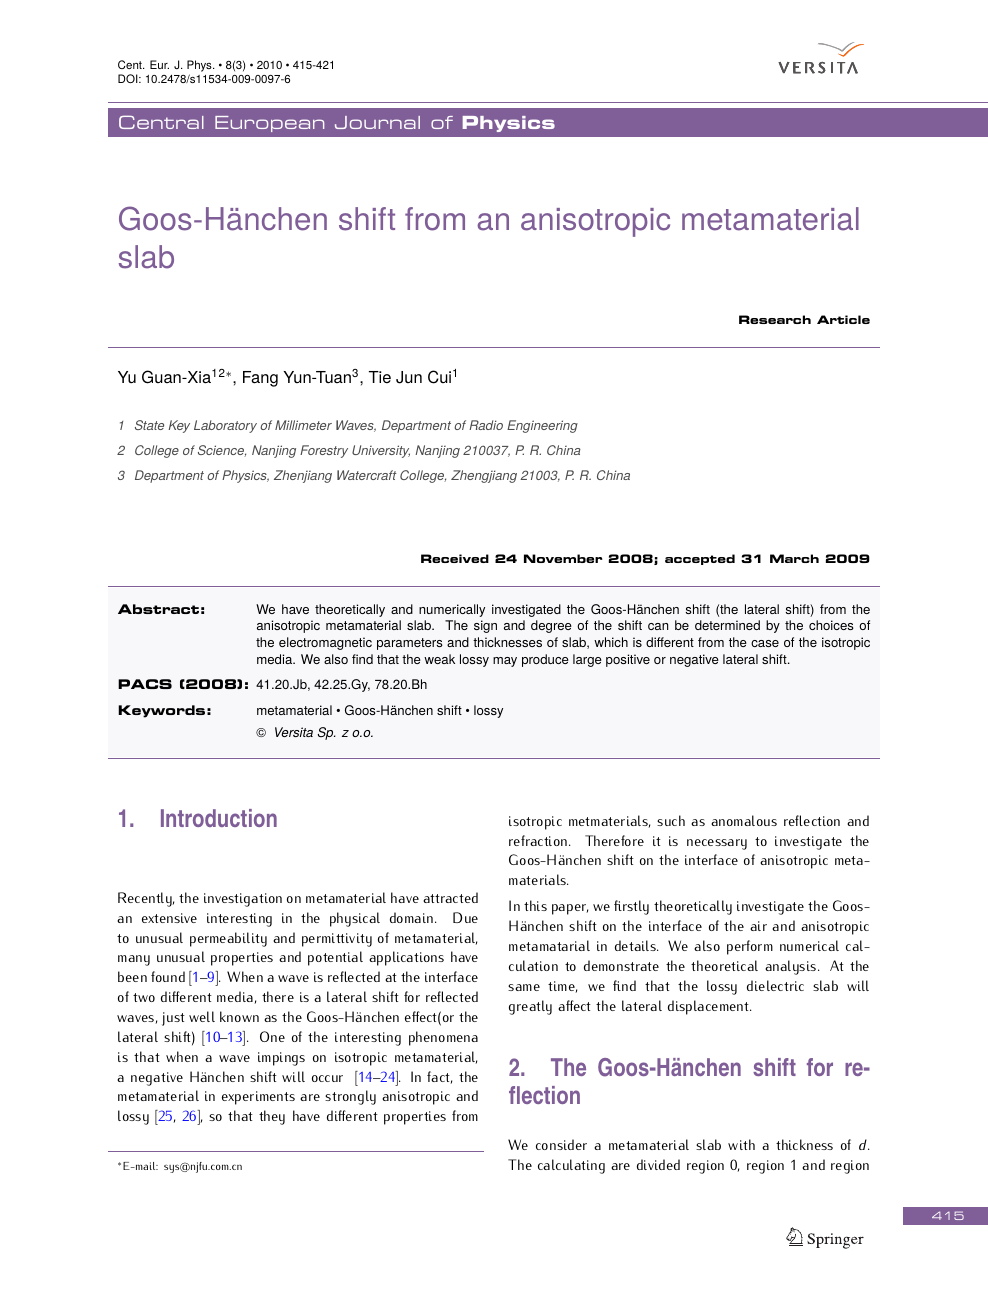 Goos-Hänchen shift from an anisotropic metamaterial slab – topic of